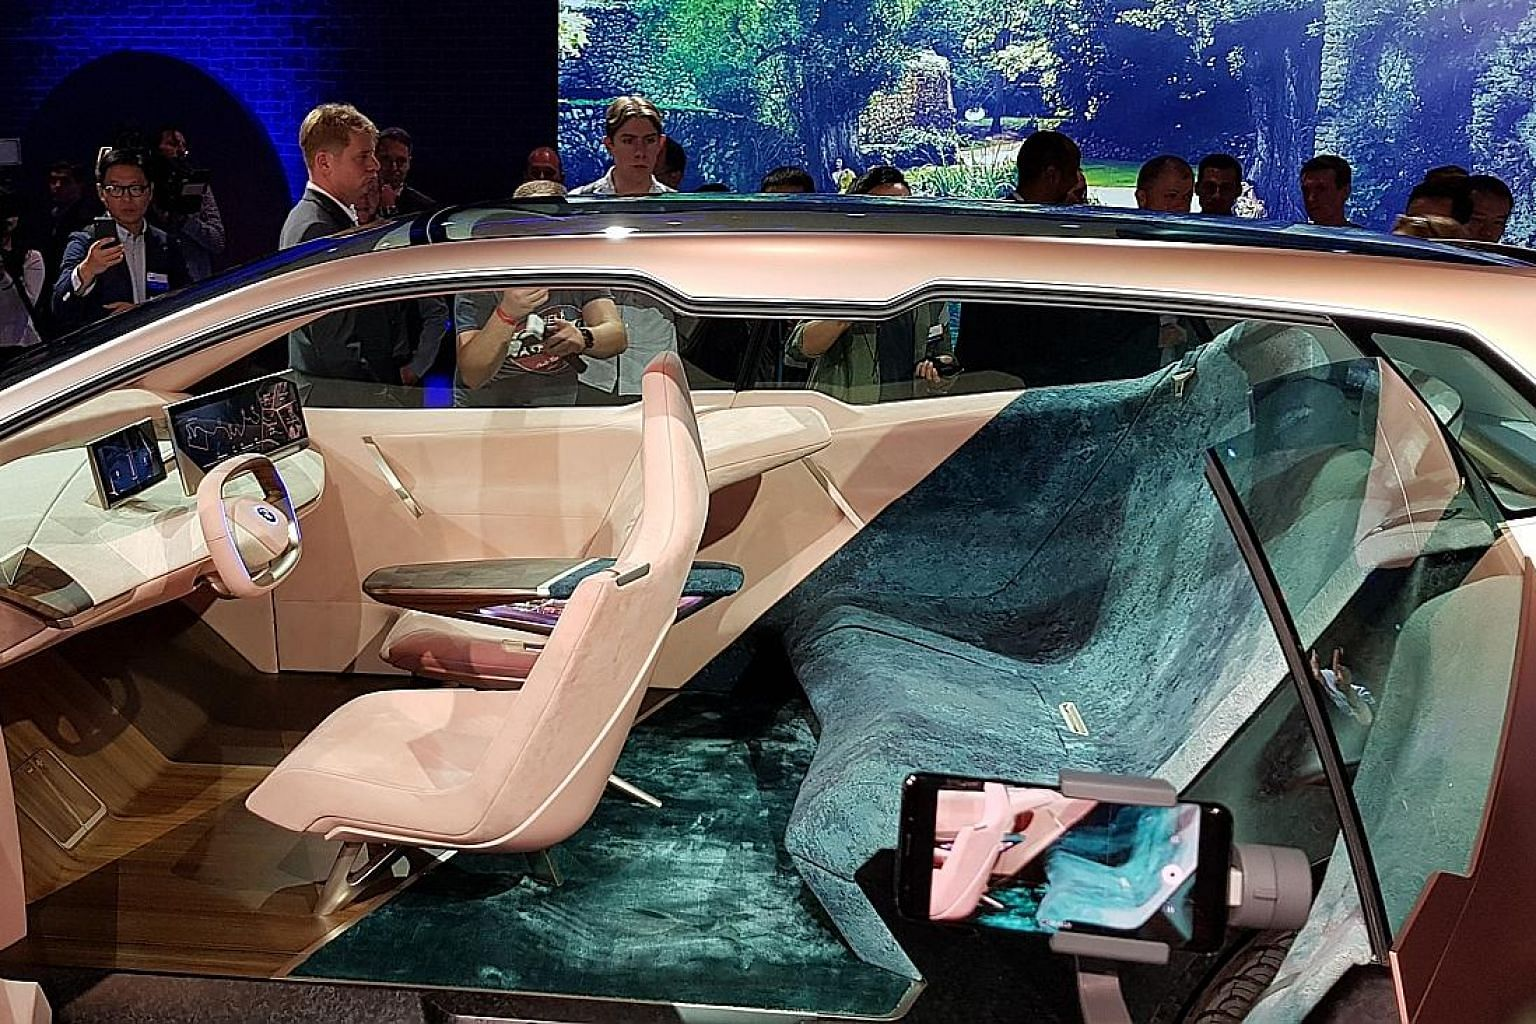 The front seats of the iNext concept car are supported by aluminium legs while the centre armrest resembles Star Trek's Starship Enterprise.